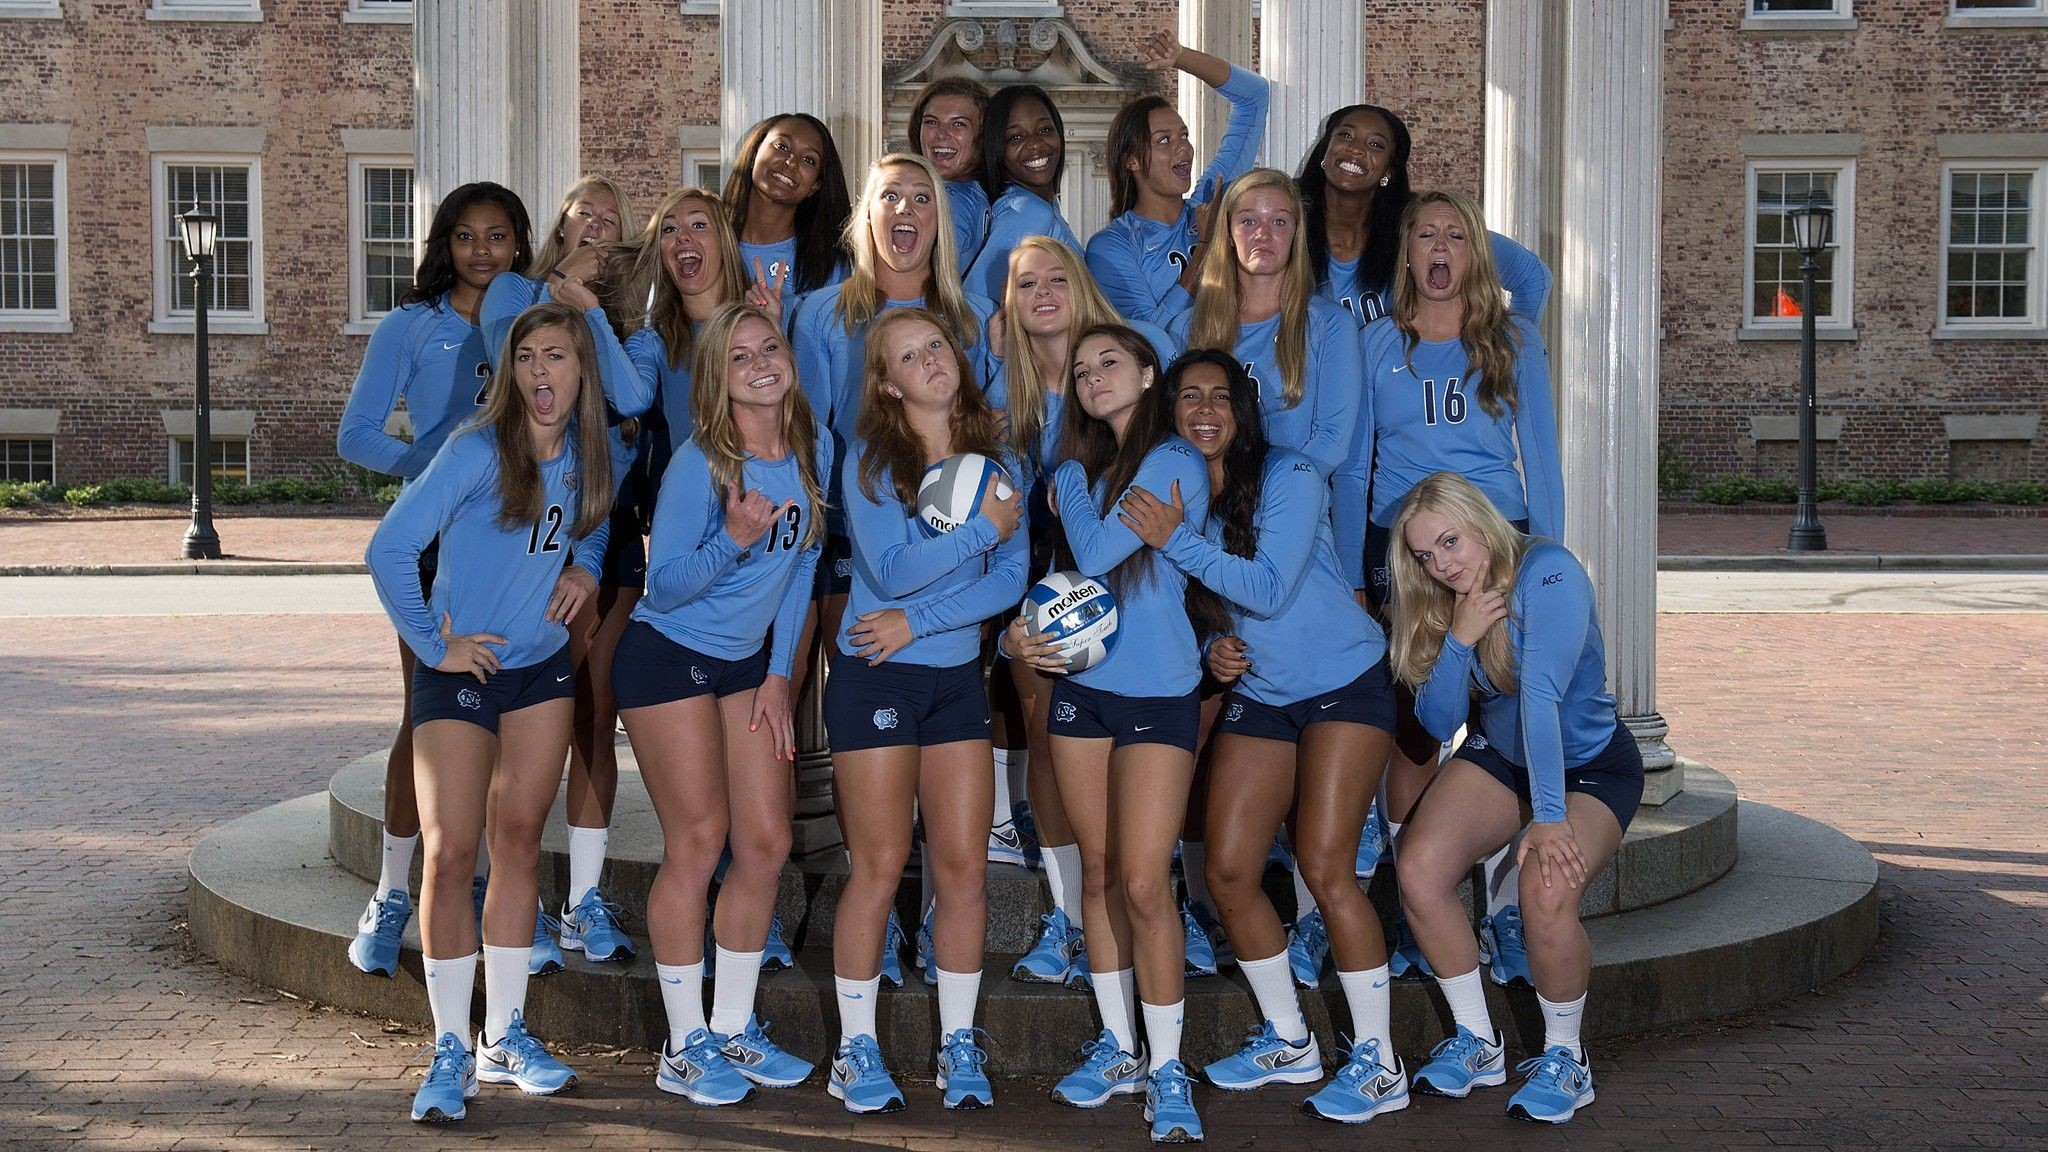 2048x1152 Photo: UNC Volleyball Team Wallpaper 2013 - Tar Heel Times